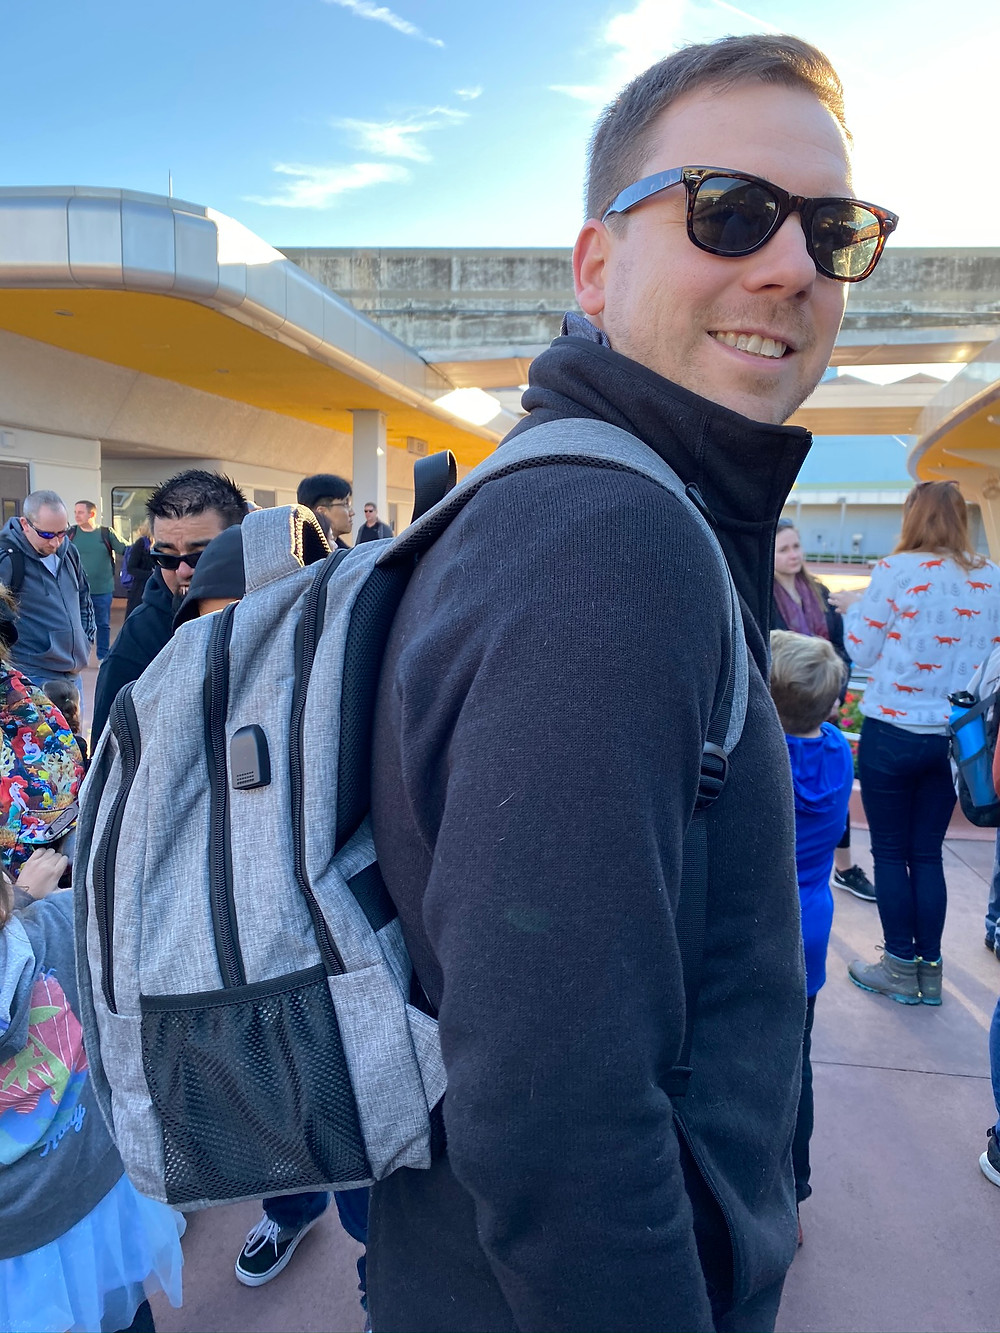 Wearing a backpack at Epcot